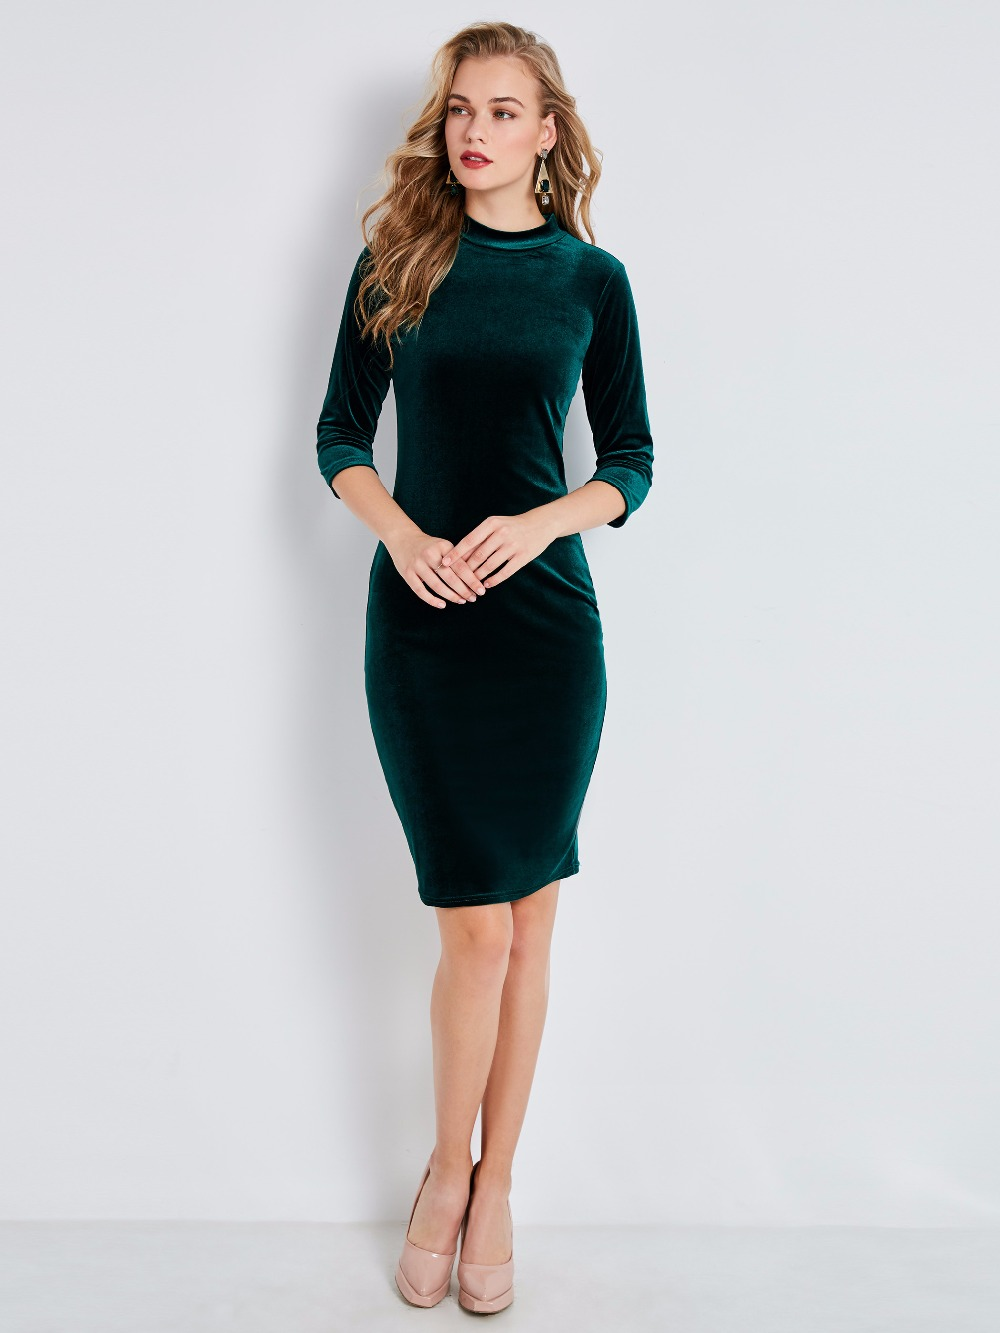 Medium Crop Of Hunter Green Dress